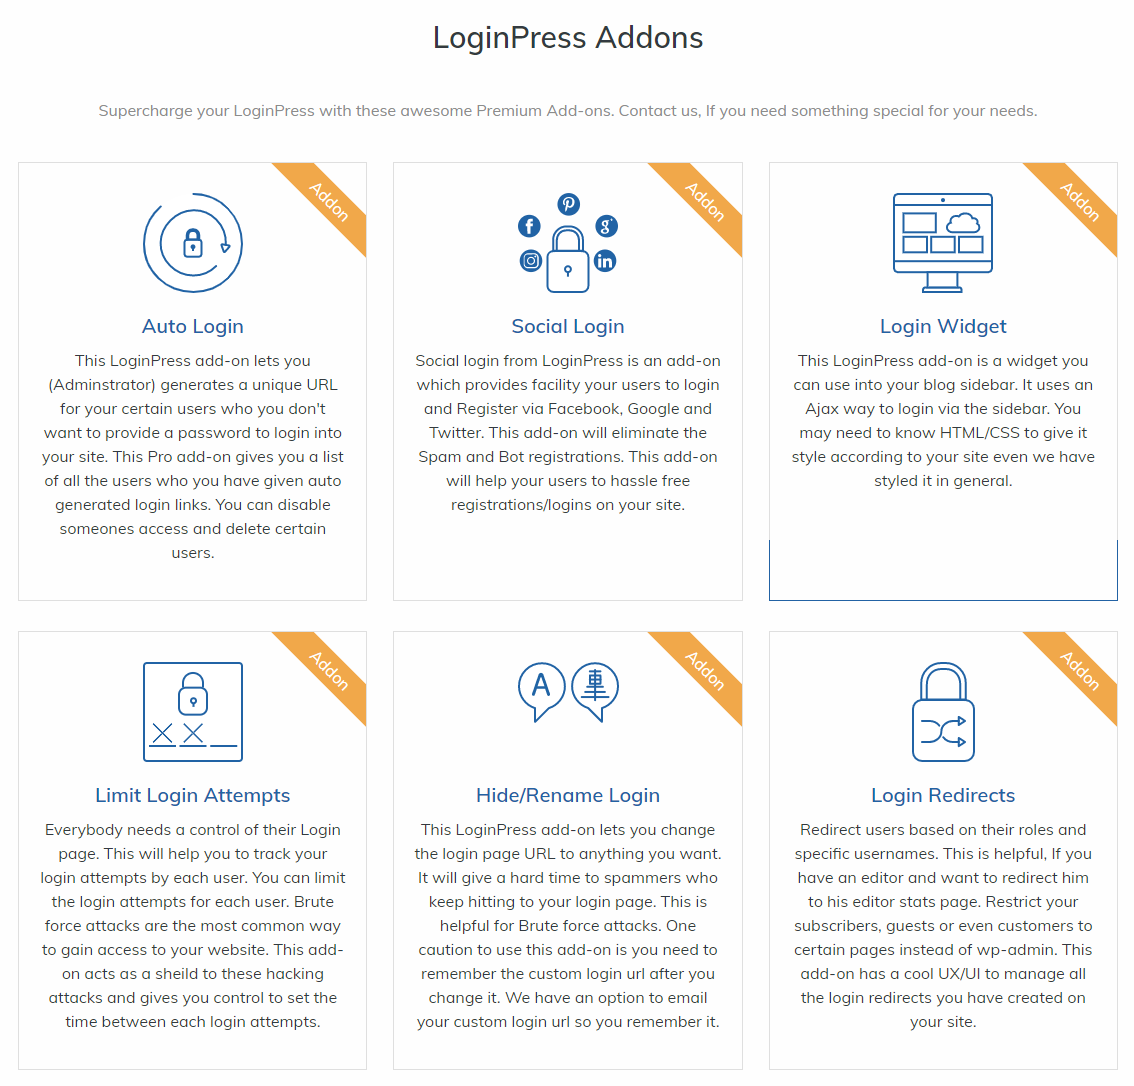 LoginPress Add-ons